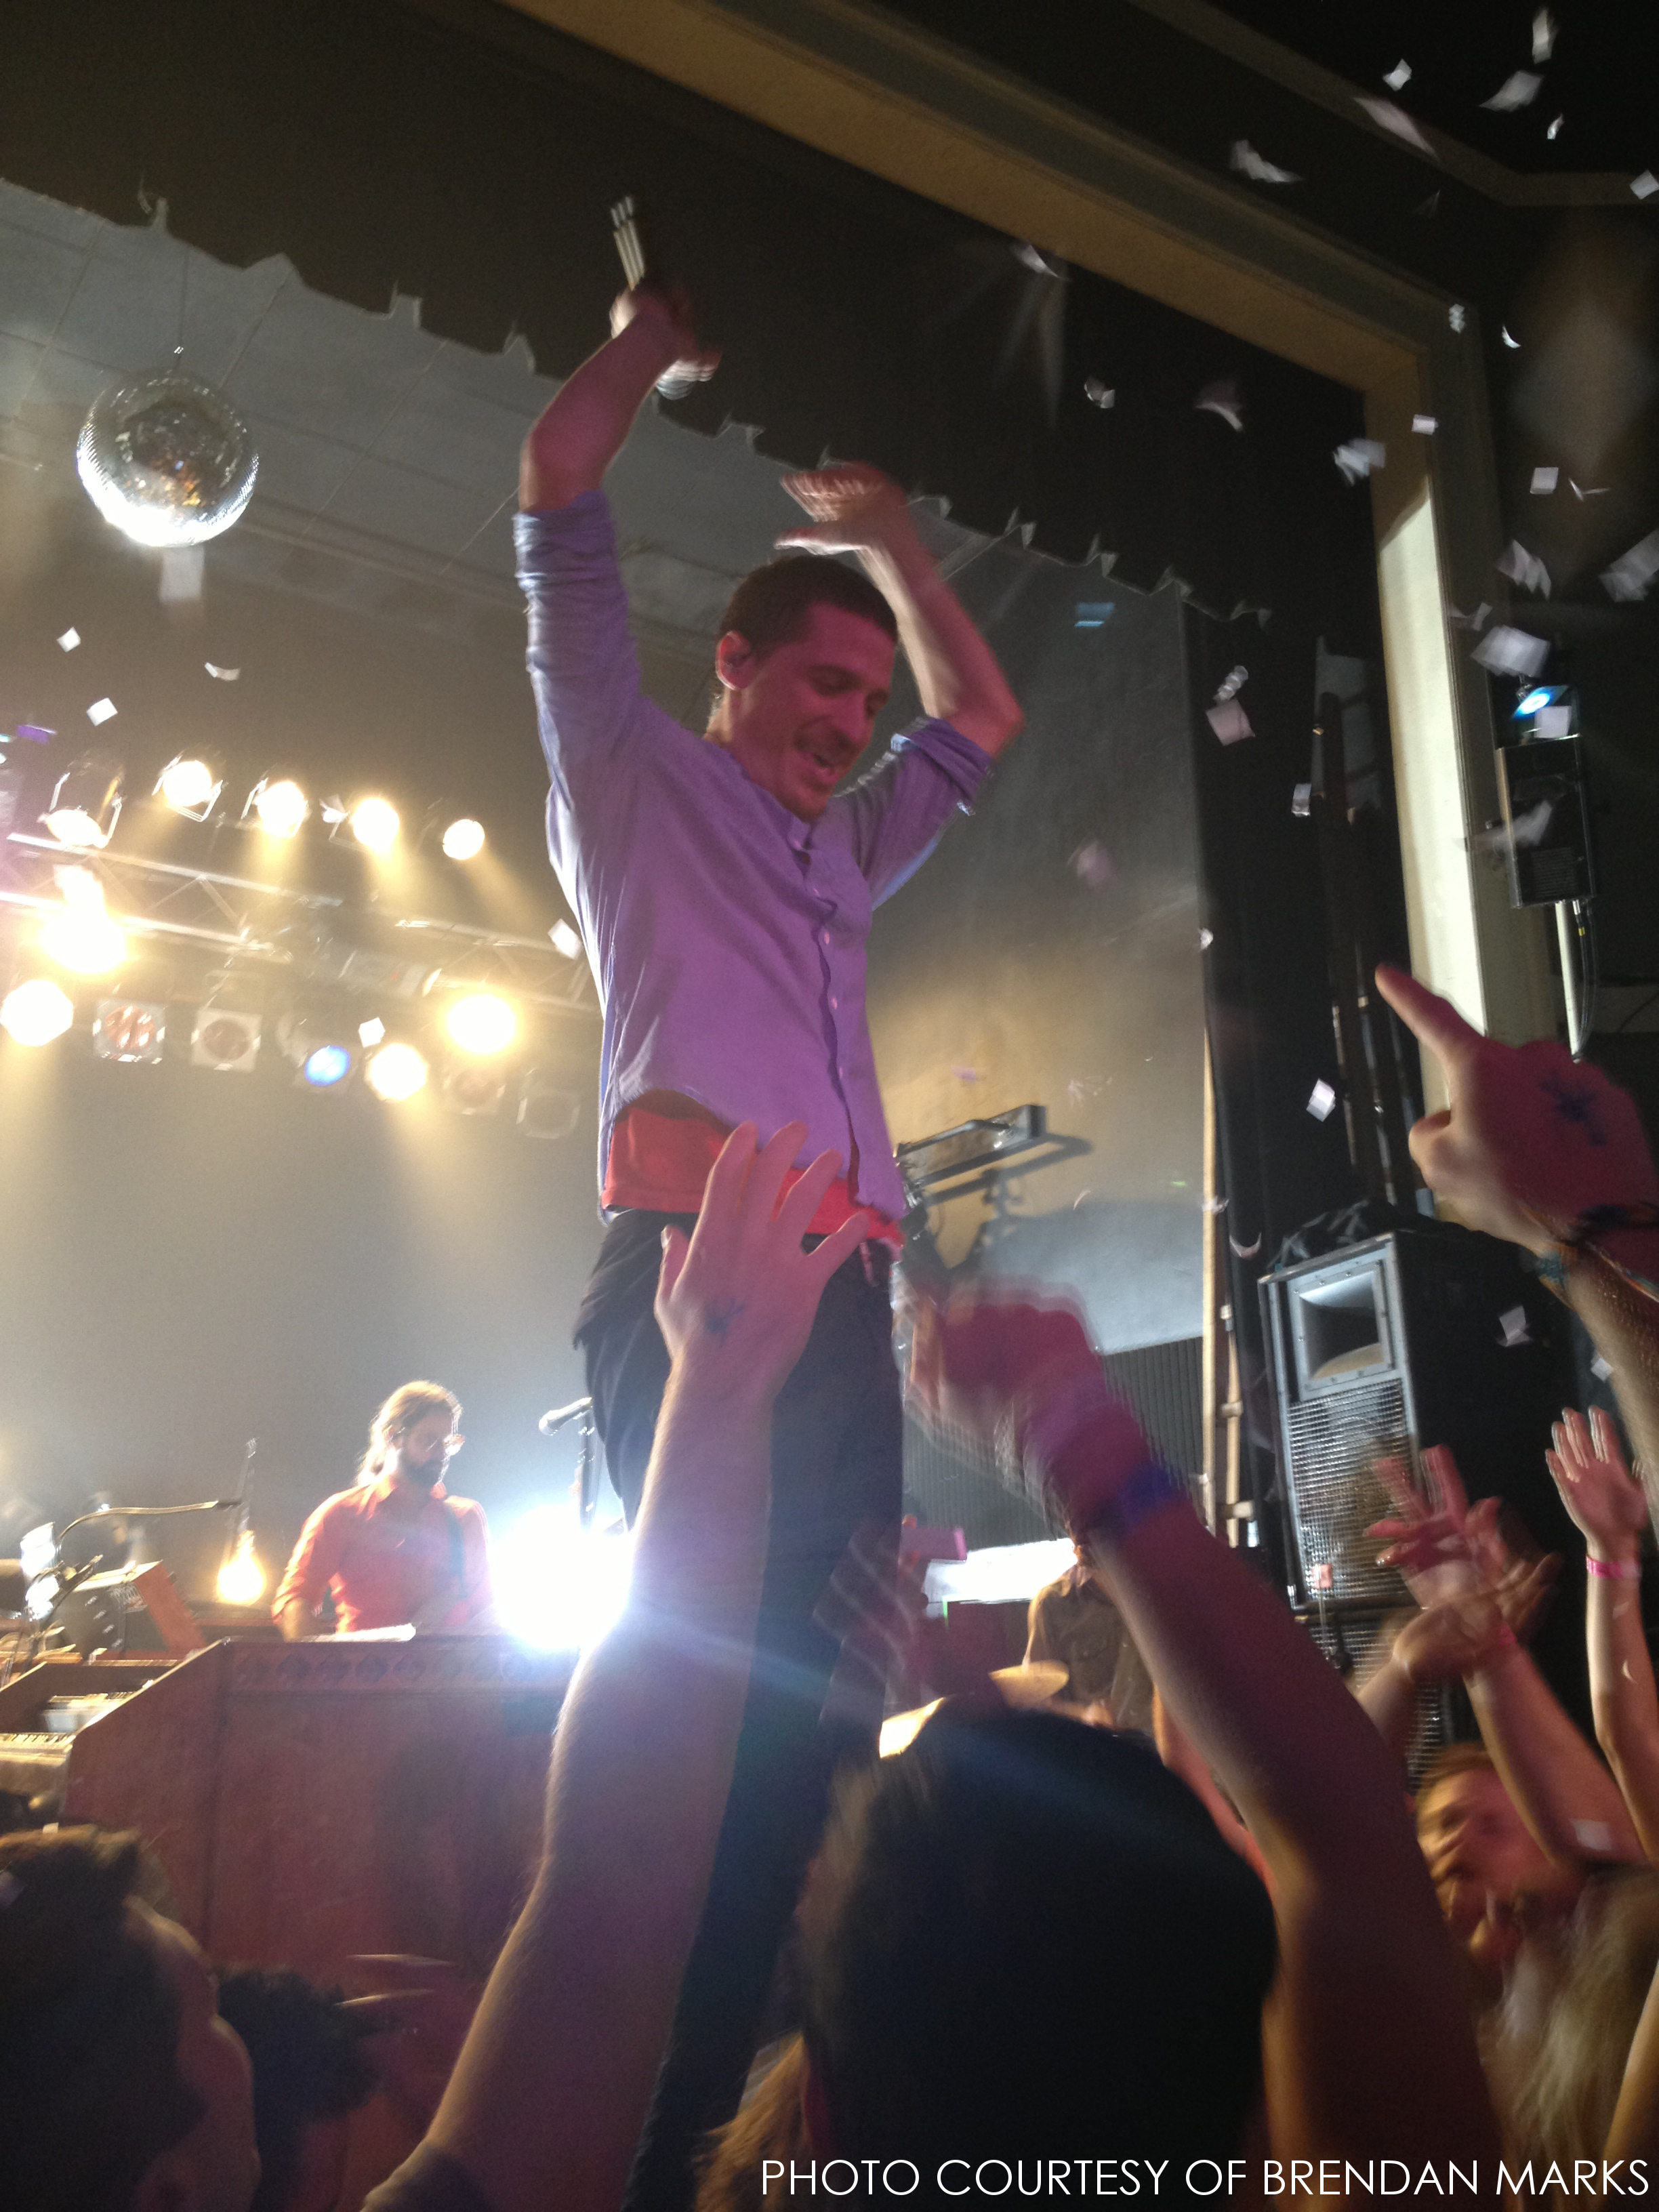 Meany after the final song of MUTEMATH's encore. Confetti cannons blew everywhere and lights blasted through the theater as Meany threw his hands up in celebration.